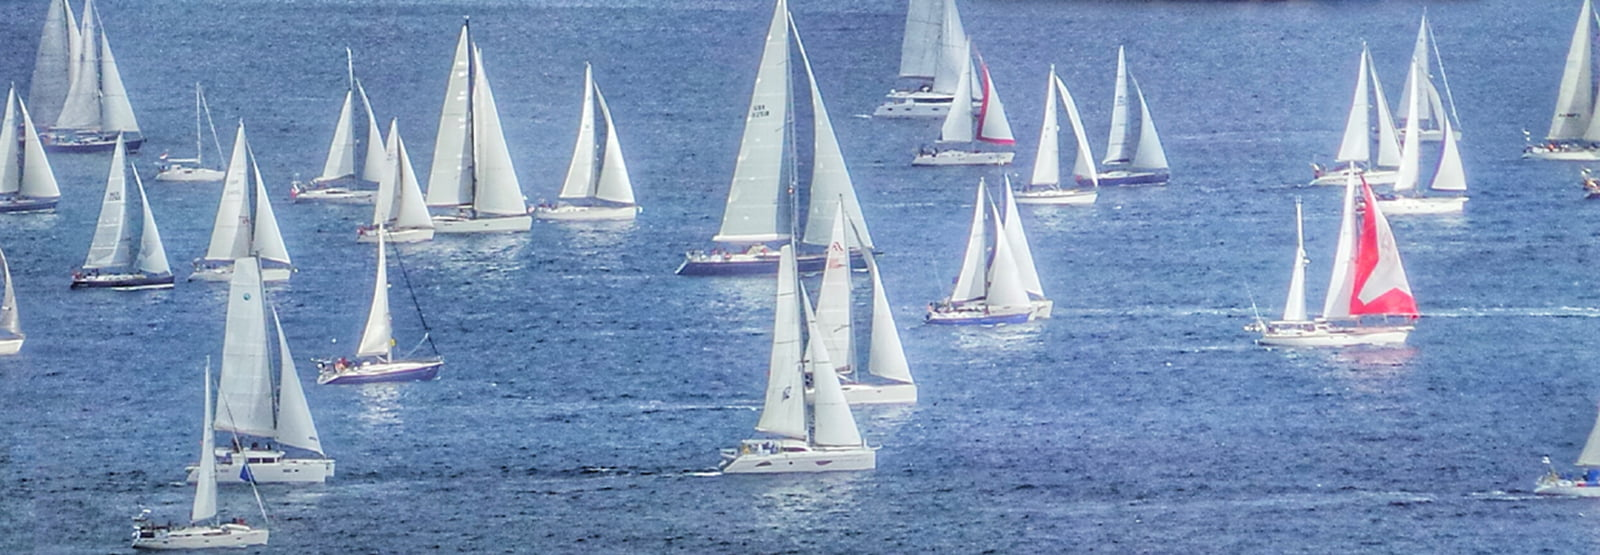 • Sail in the ARC from the Canaries to the Caribbean